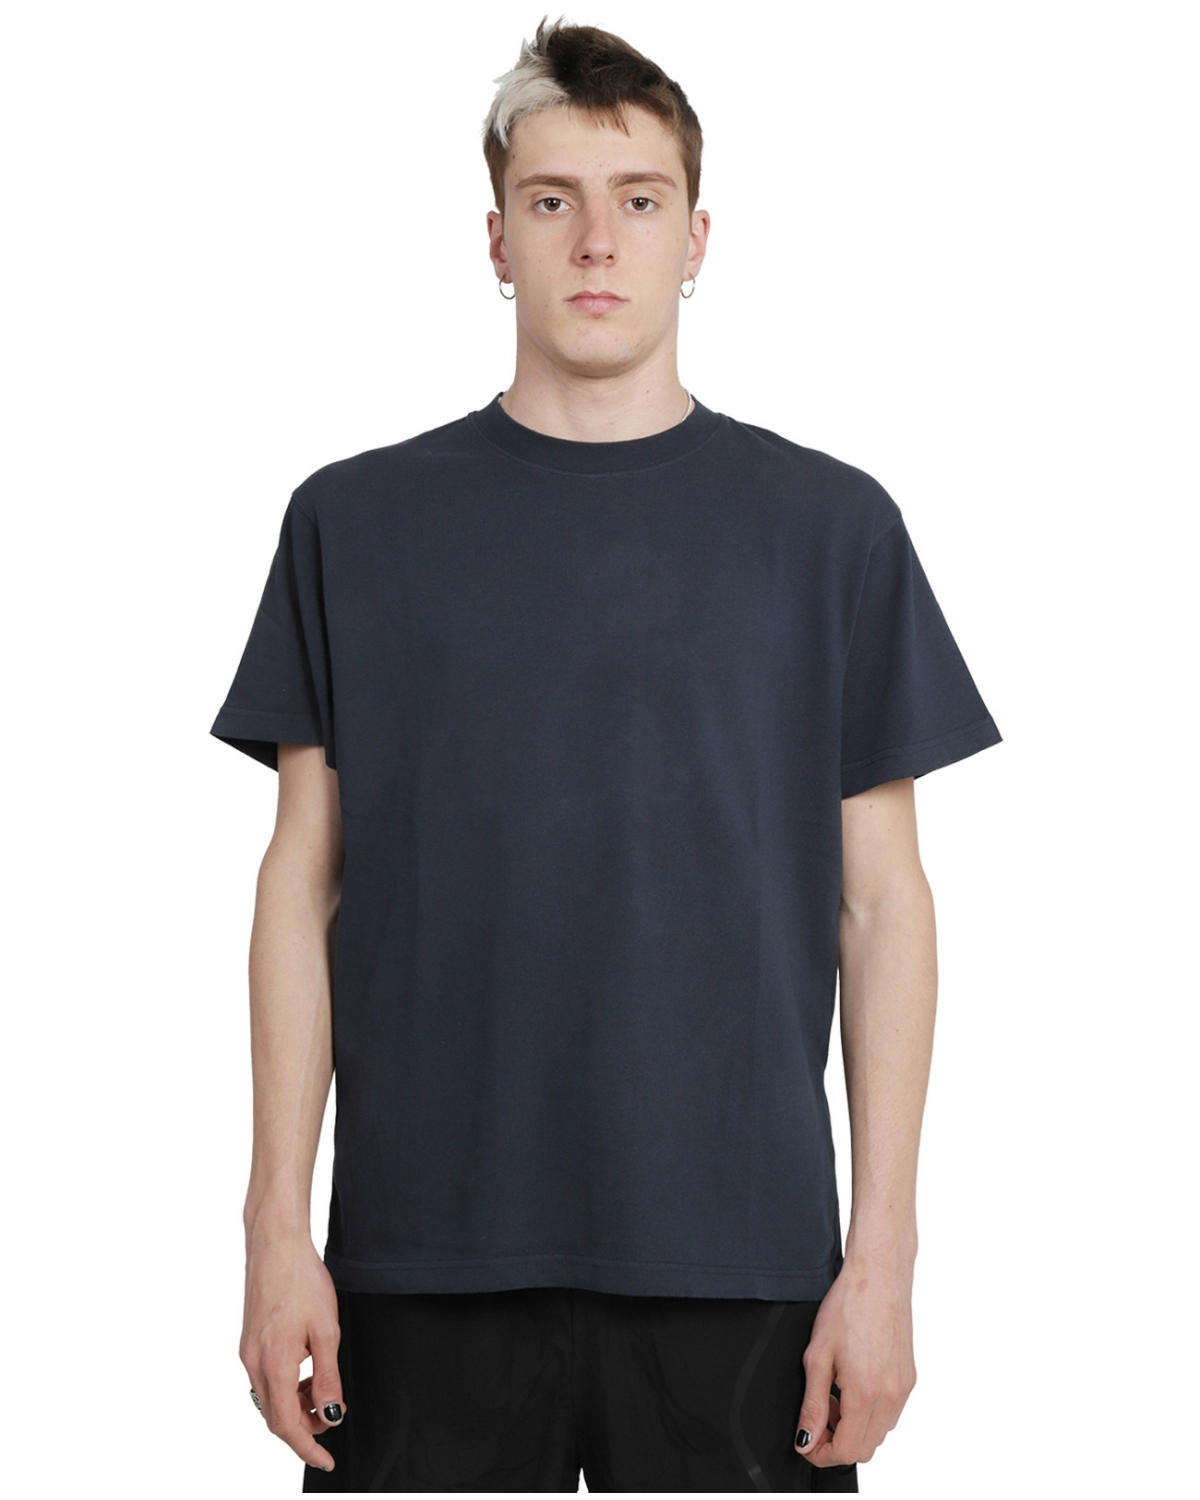 A-COLD-WALL* navy graphic tee